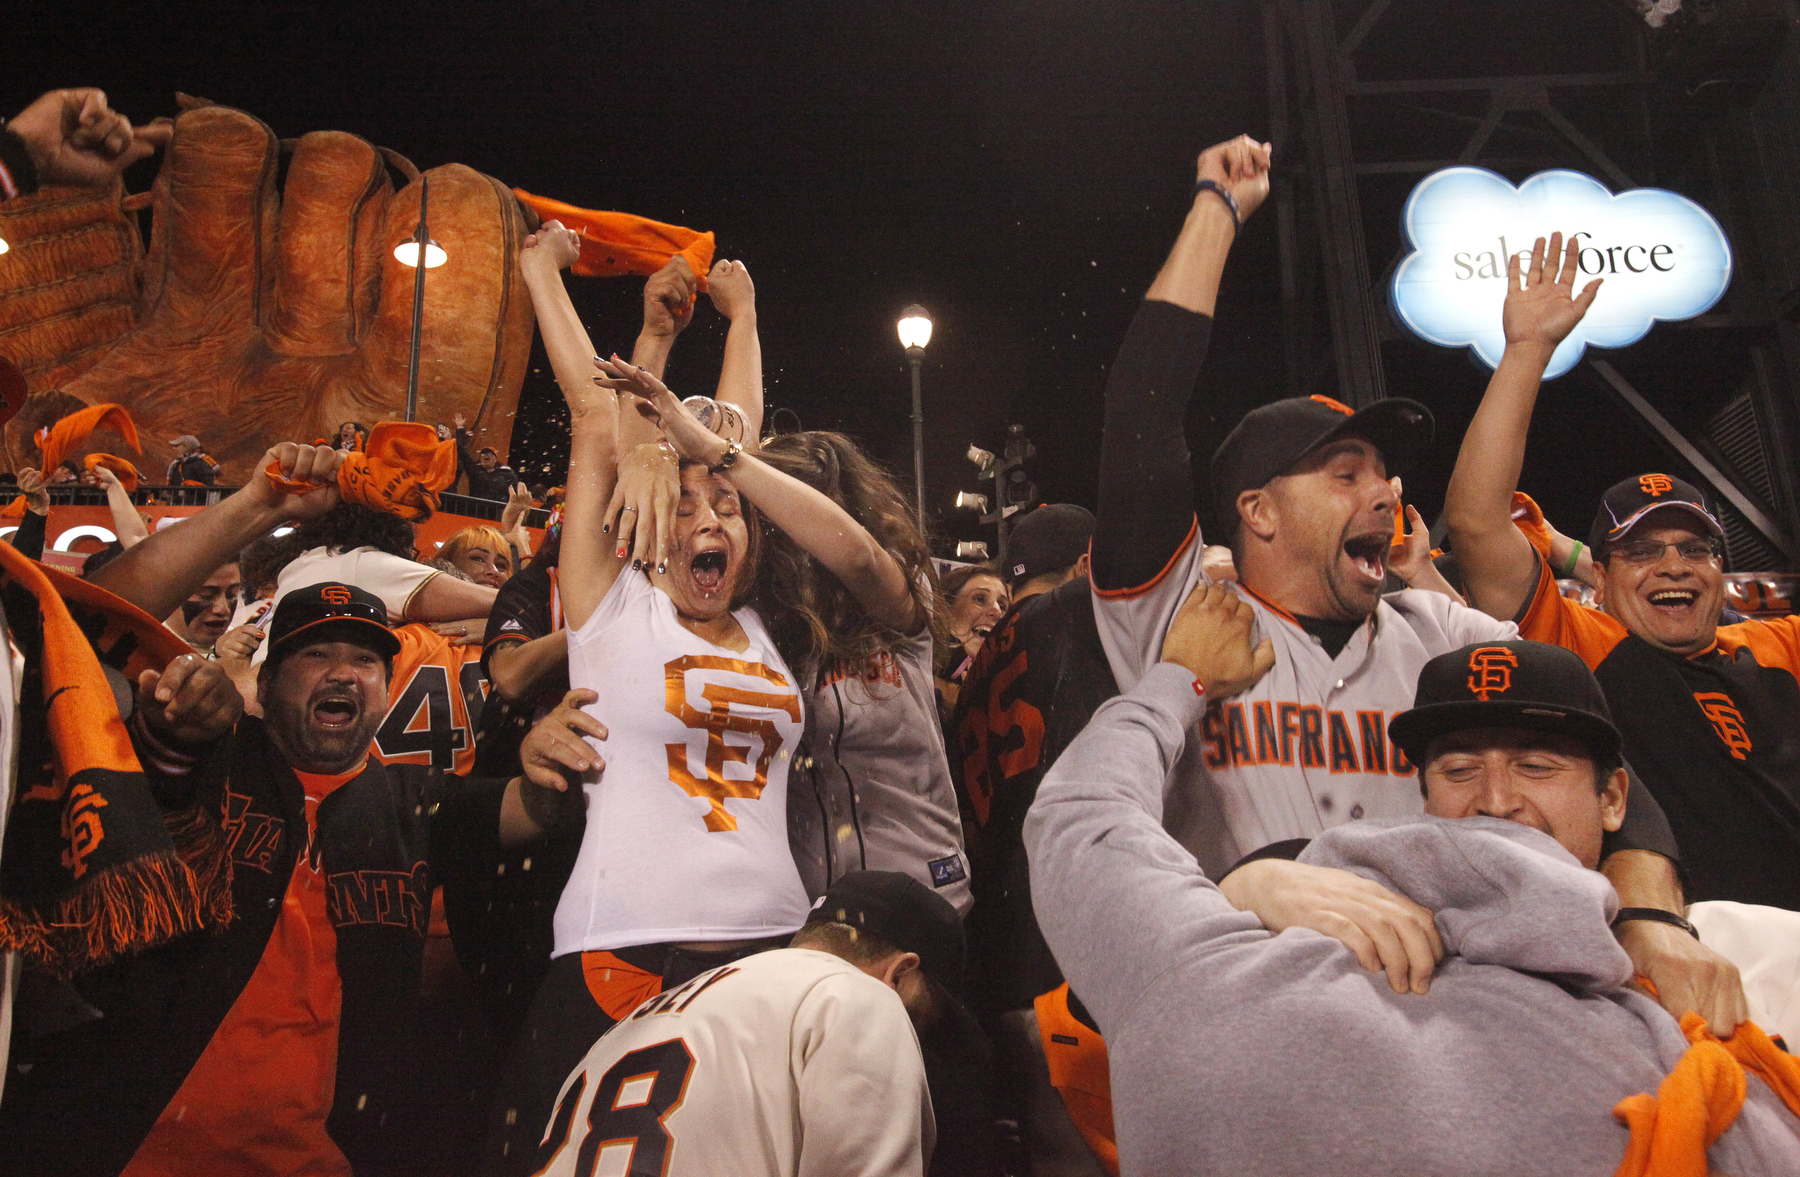 Fans, from left, Rick Oropeza, Yana Borovlev, Ashley Henry, Roman Kreslavsky, Joey Juarez, Josh Jemelka and Carlos Rizo celebrate after the Giants win game five of the NLCS at AT&T Park Oct. 16, 2014 in San Francisco, Calif.